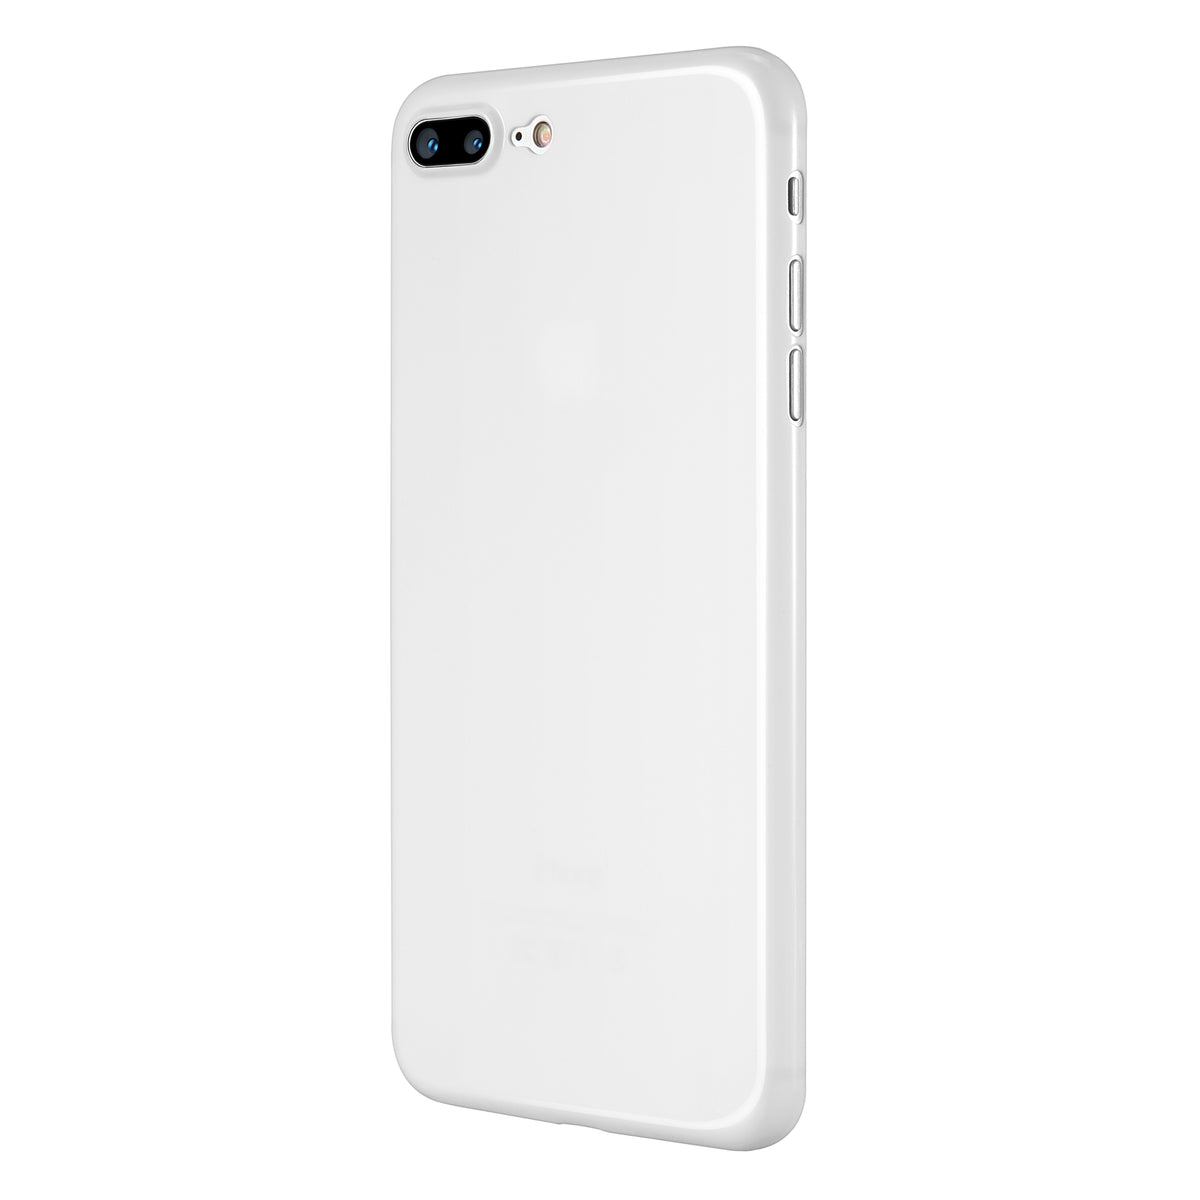 Go Original iPhone 7 Plus Slim Case